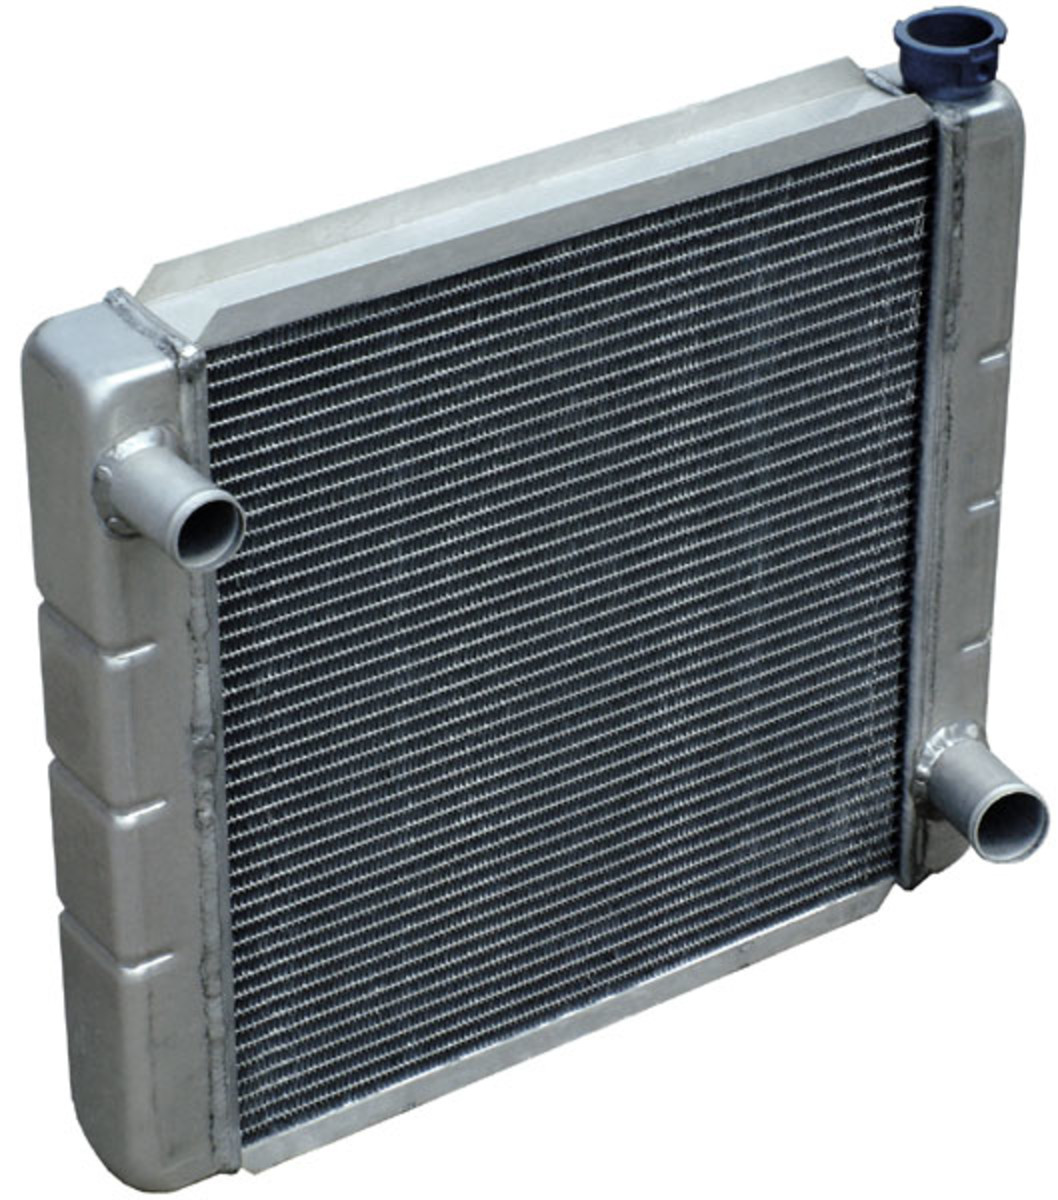 A clogged radiator will prevent coolant circulation.